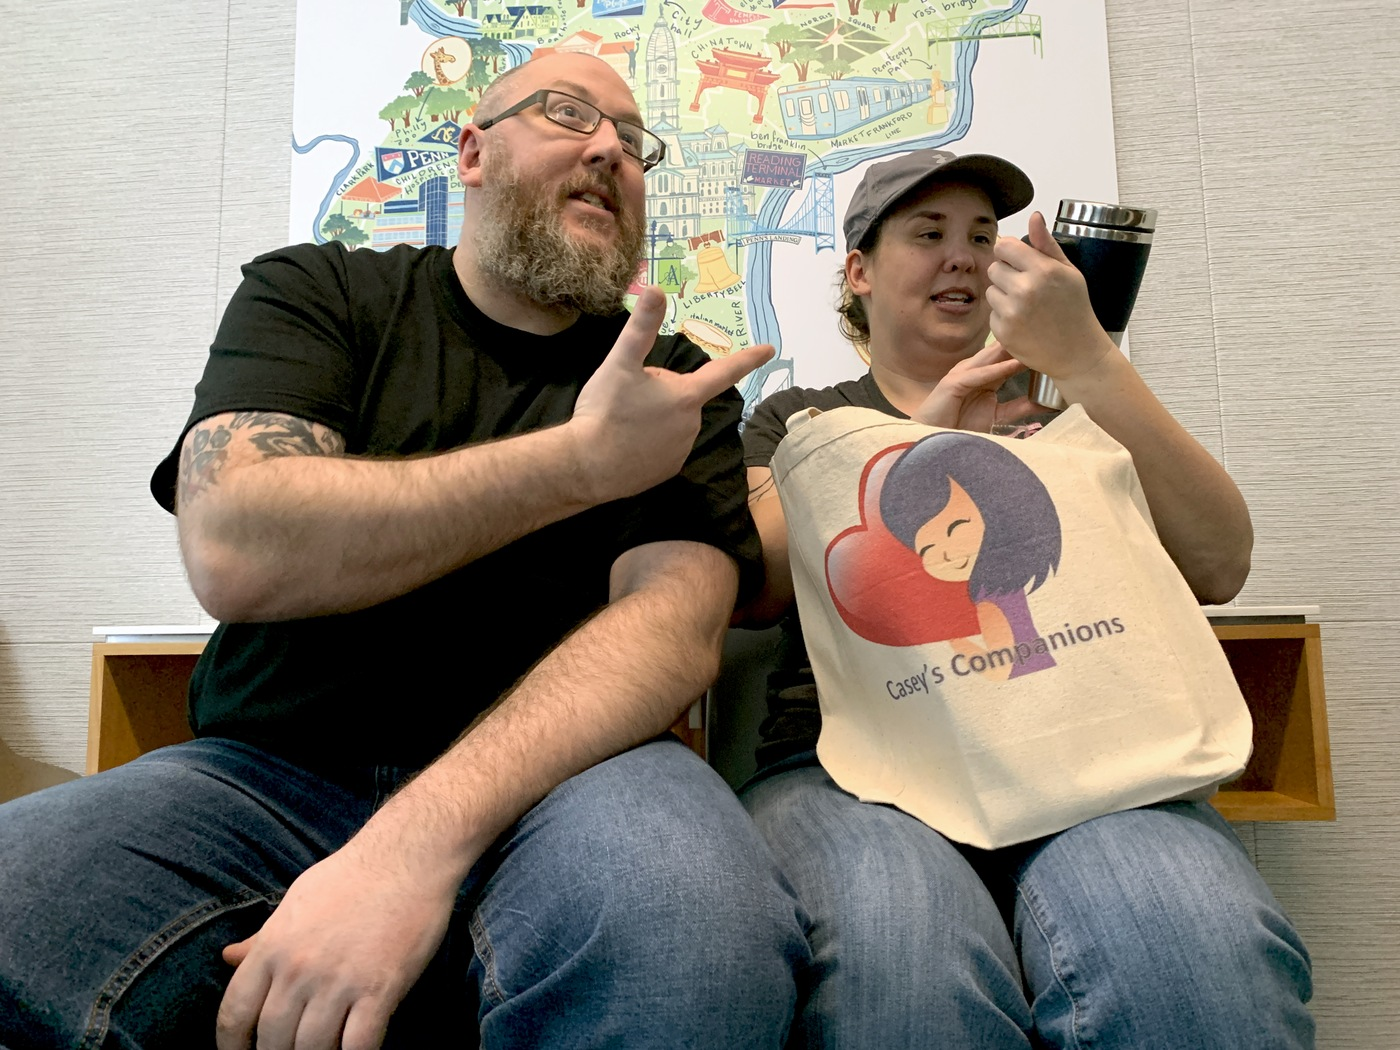 Mark and Nicole Fucci open a bag of items donated by Casey's Companions while at Children's Hospital of Philadelphia.